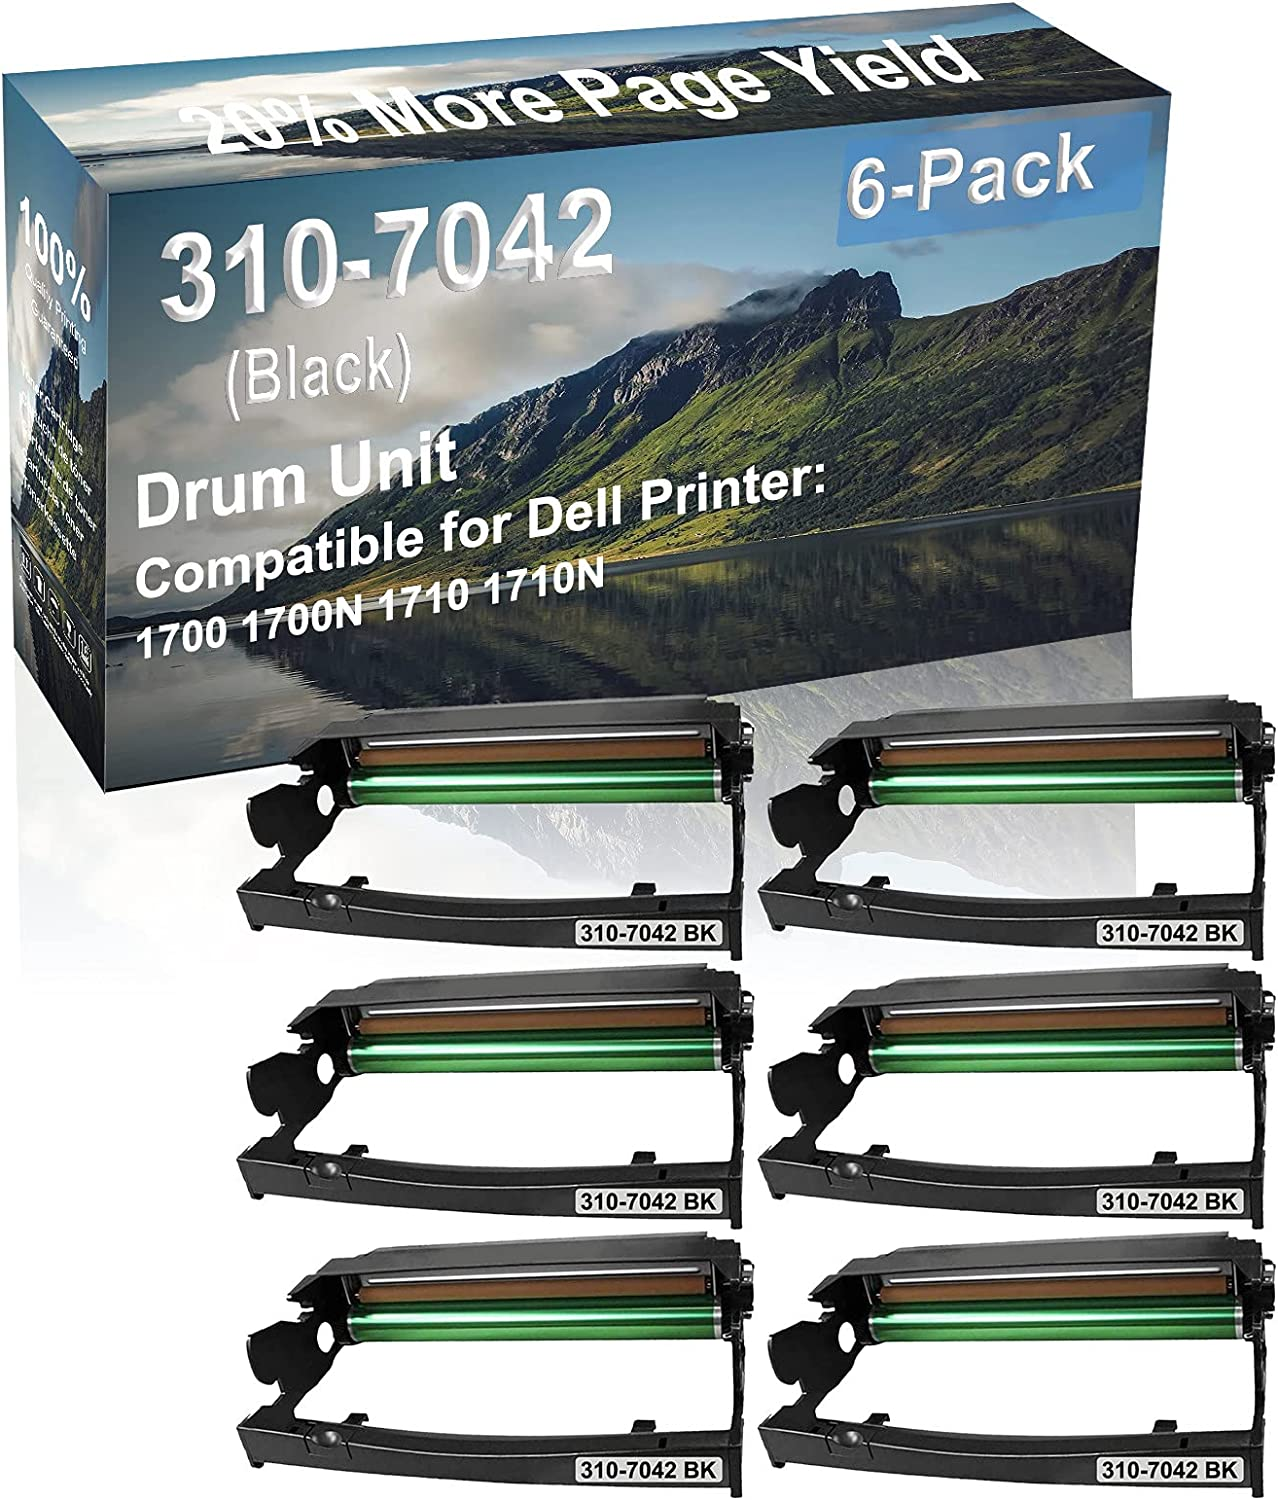 6-Pack (Black) Compatible 1700 1700N 1710 1710N Printer Drum Unit Replacement for Dell 310-7042 Drum Kit